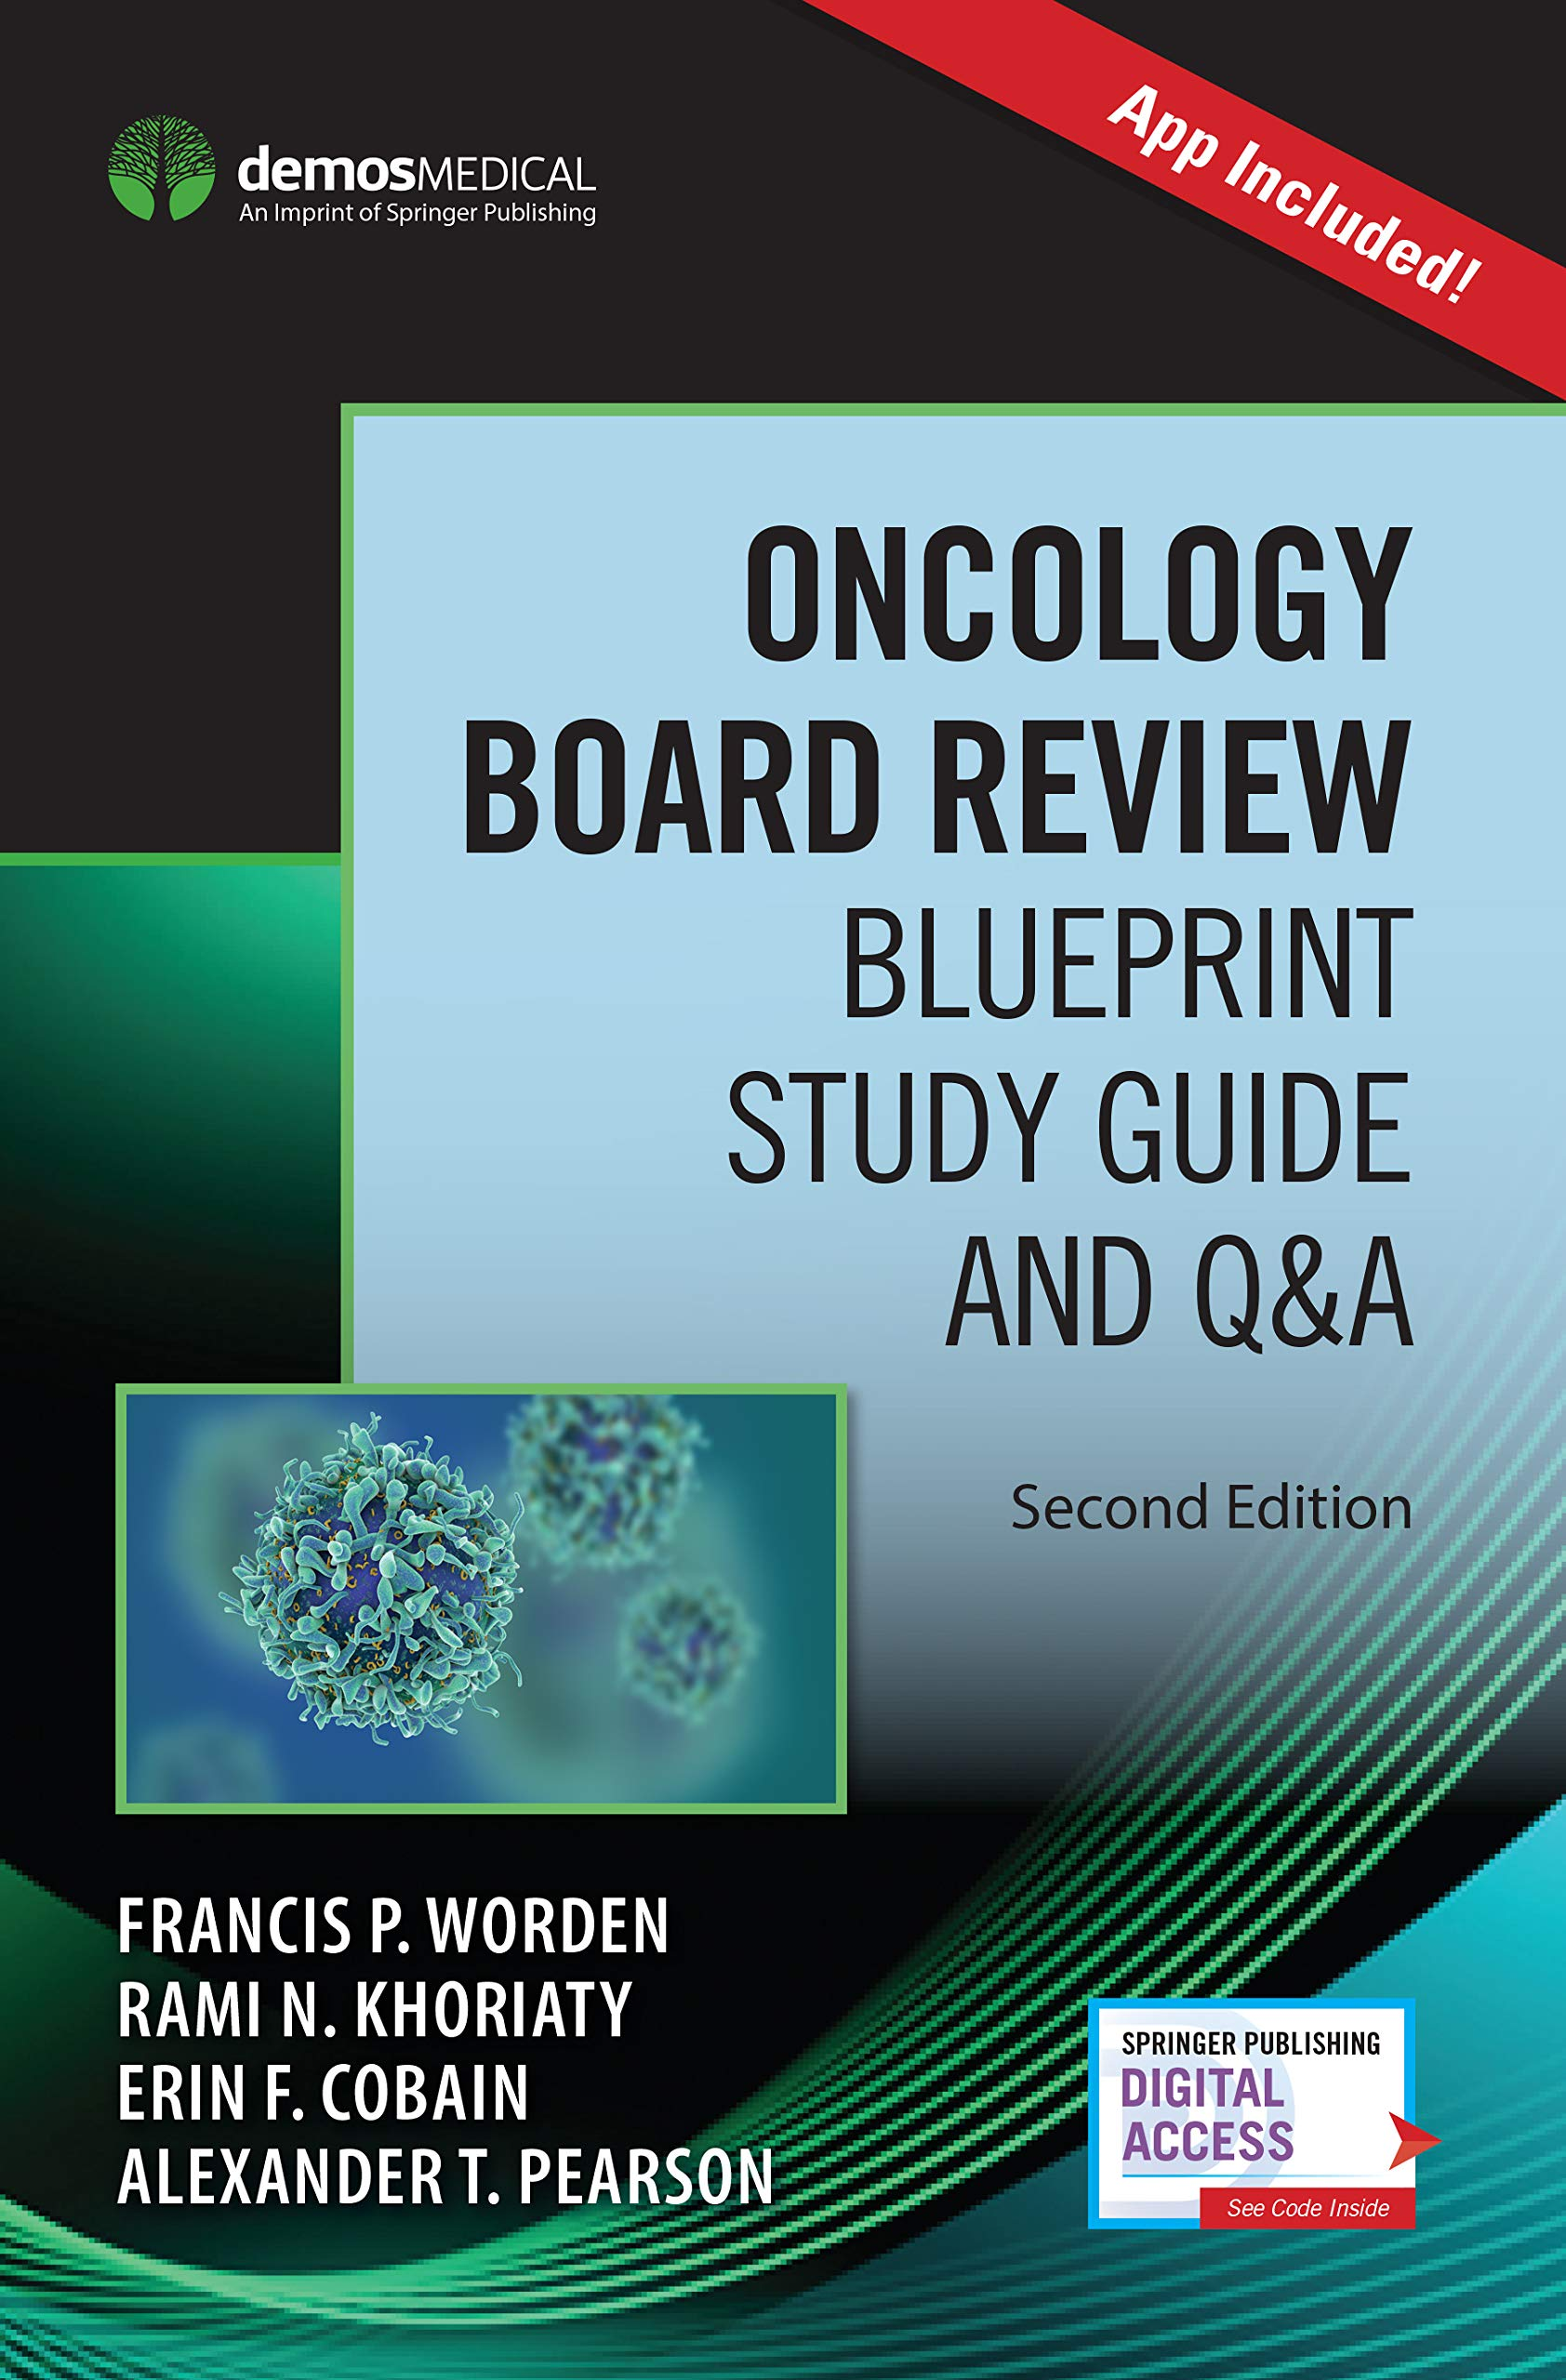 Oncology Board Review, Second Edition (Book + Free App